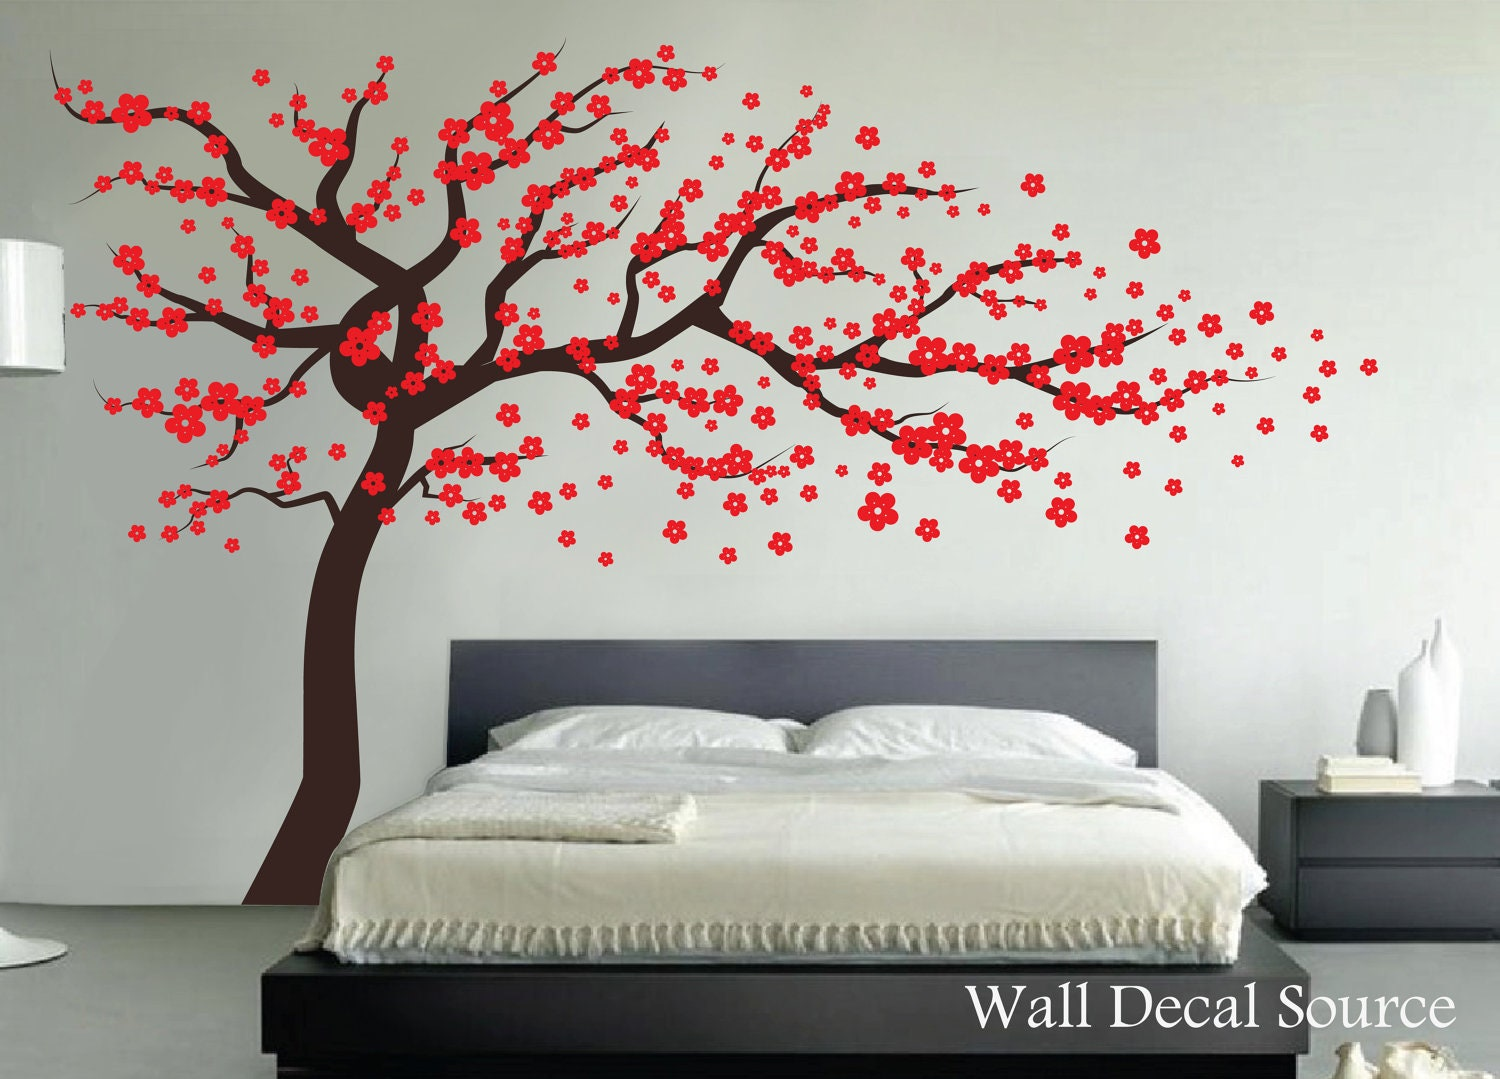 Chandeliers pendant lights for Cherry blossom wall mural stencil